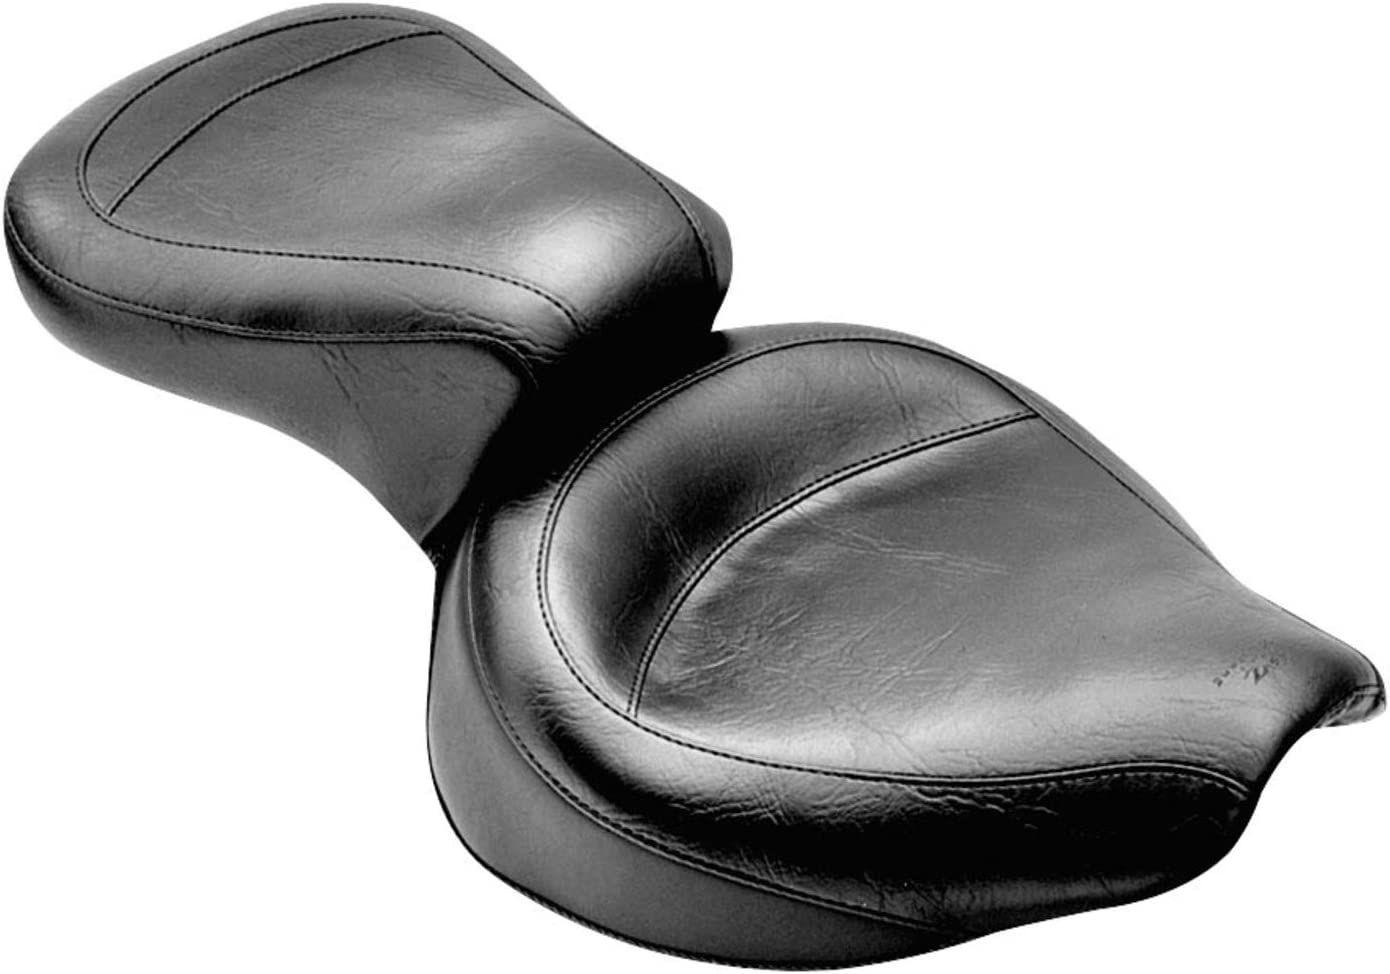 Mustang Motorcycle Seats One-Piece Skirted Seat with Studs